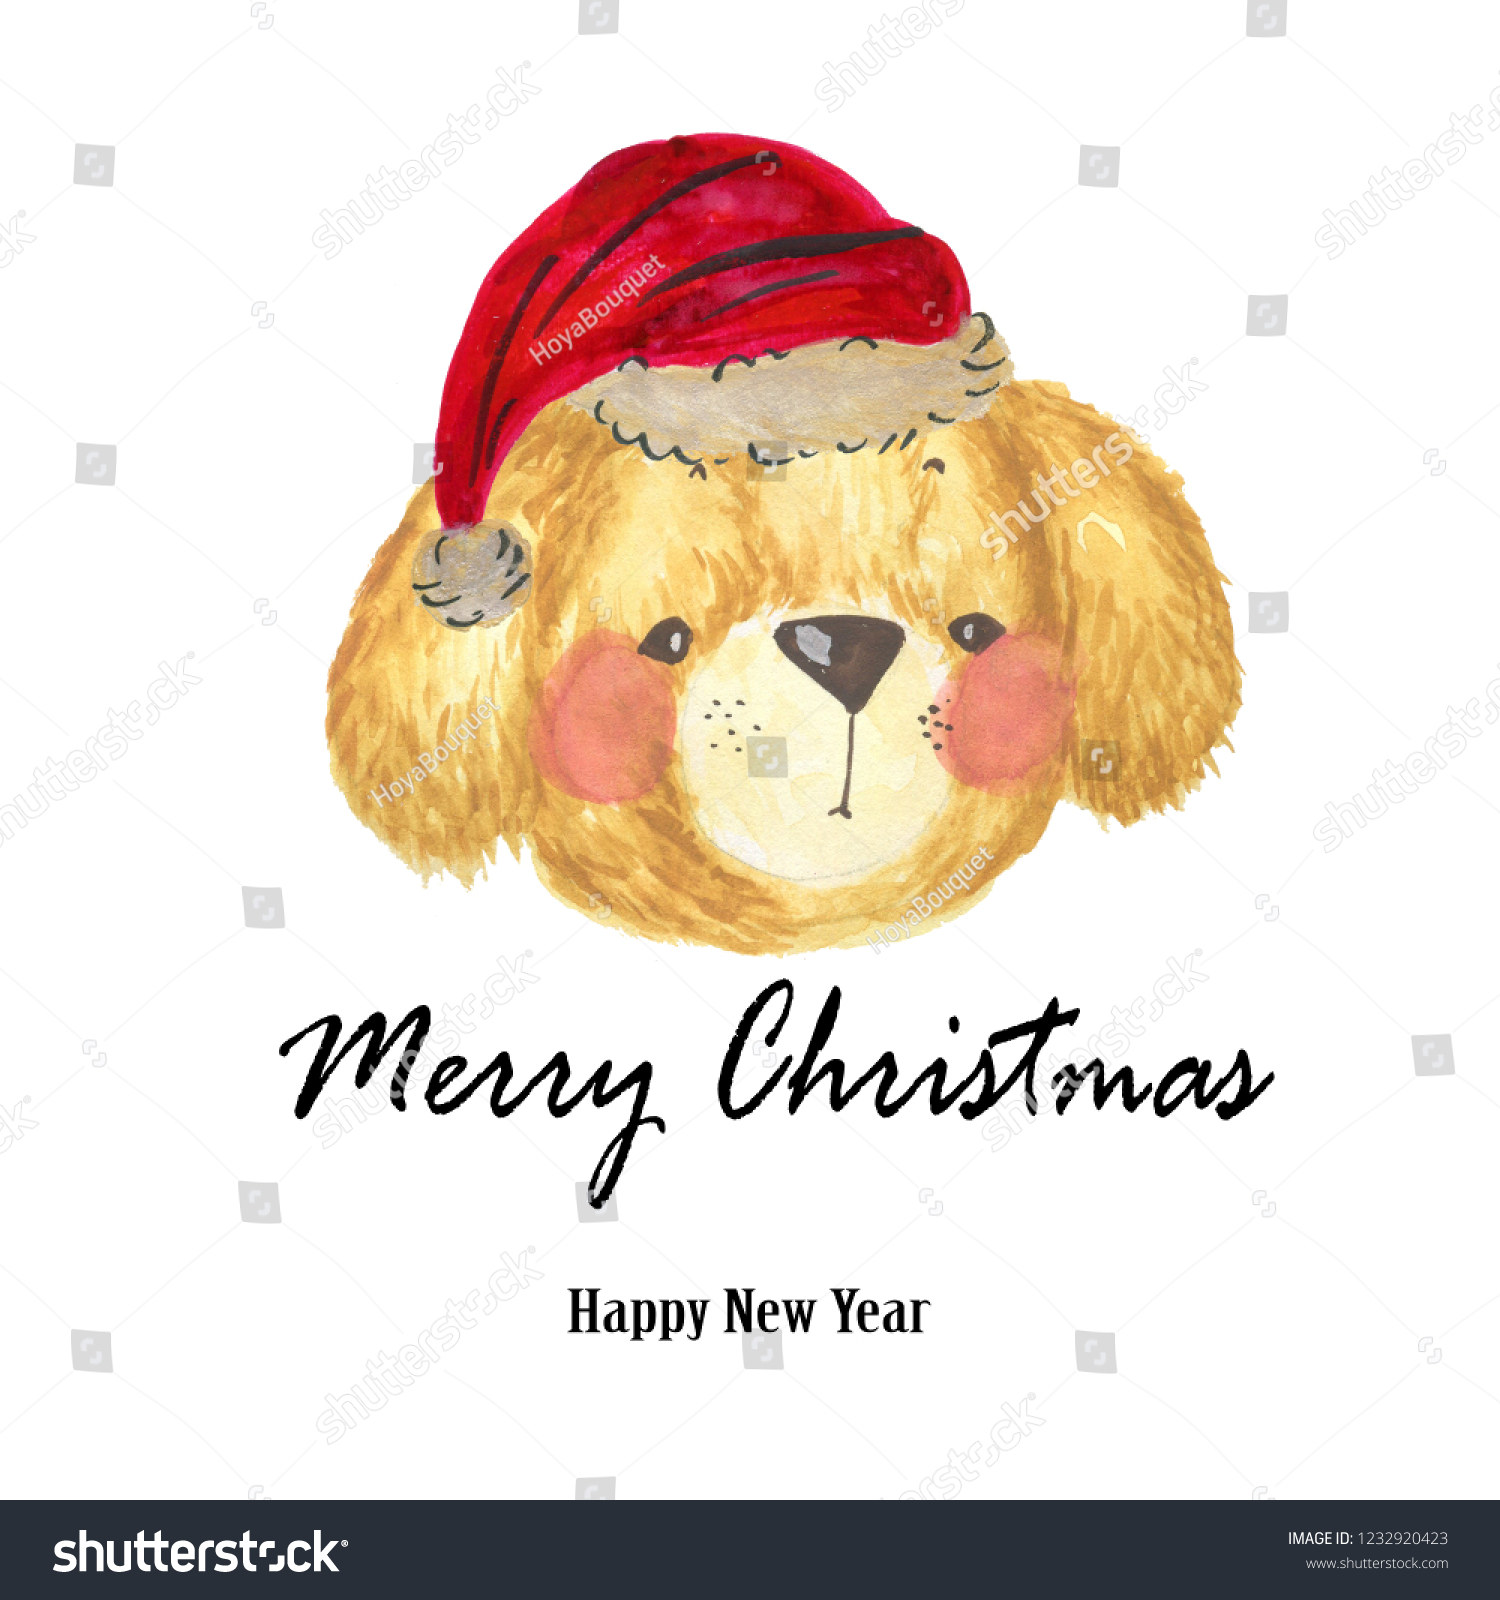 737aaf9881e9a Watercolor Santa Claus red hat dog Hand painted christmas illustration  isolated on white background for design